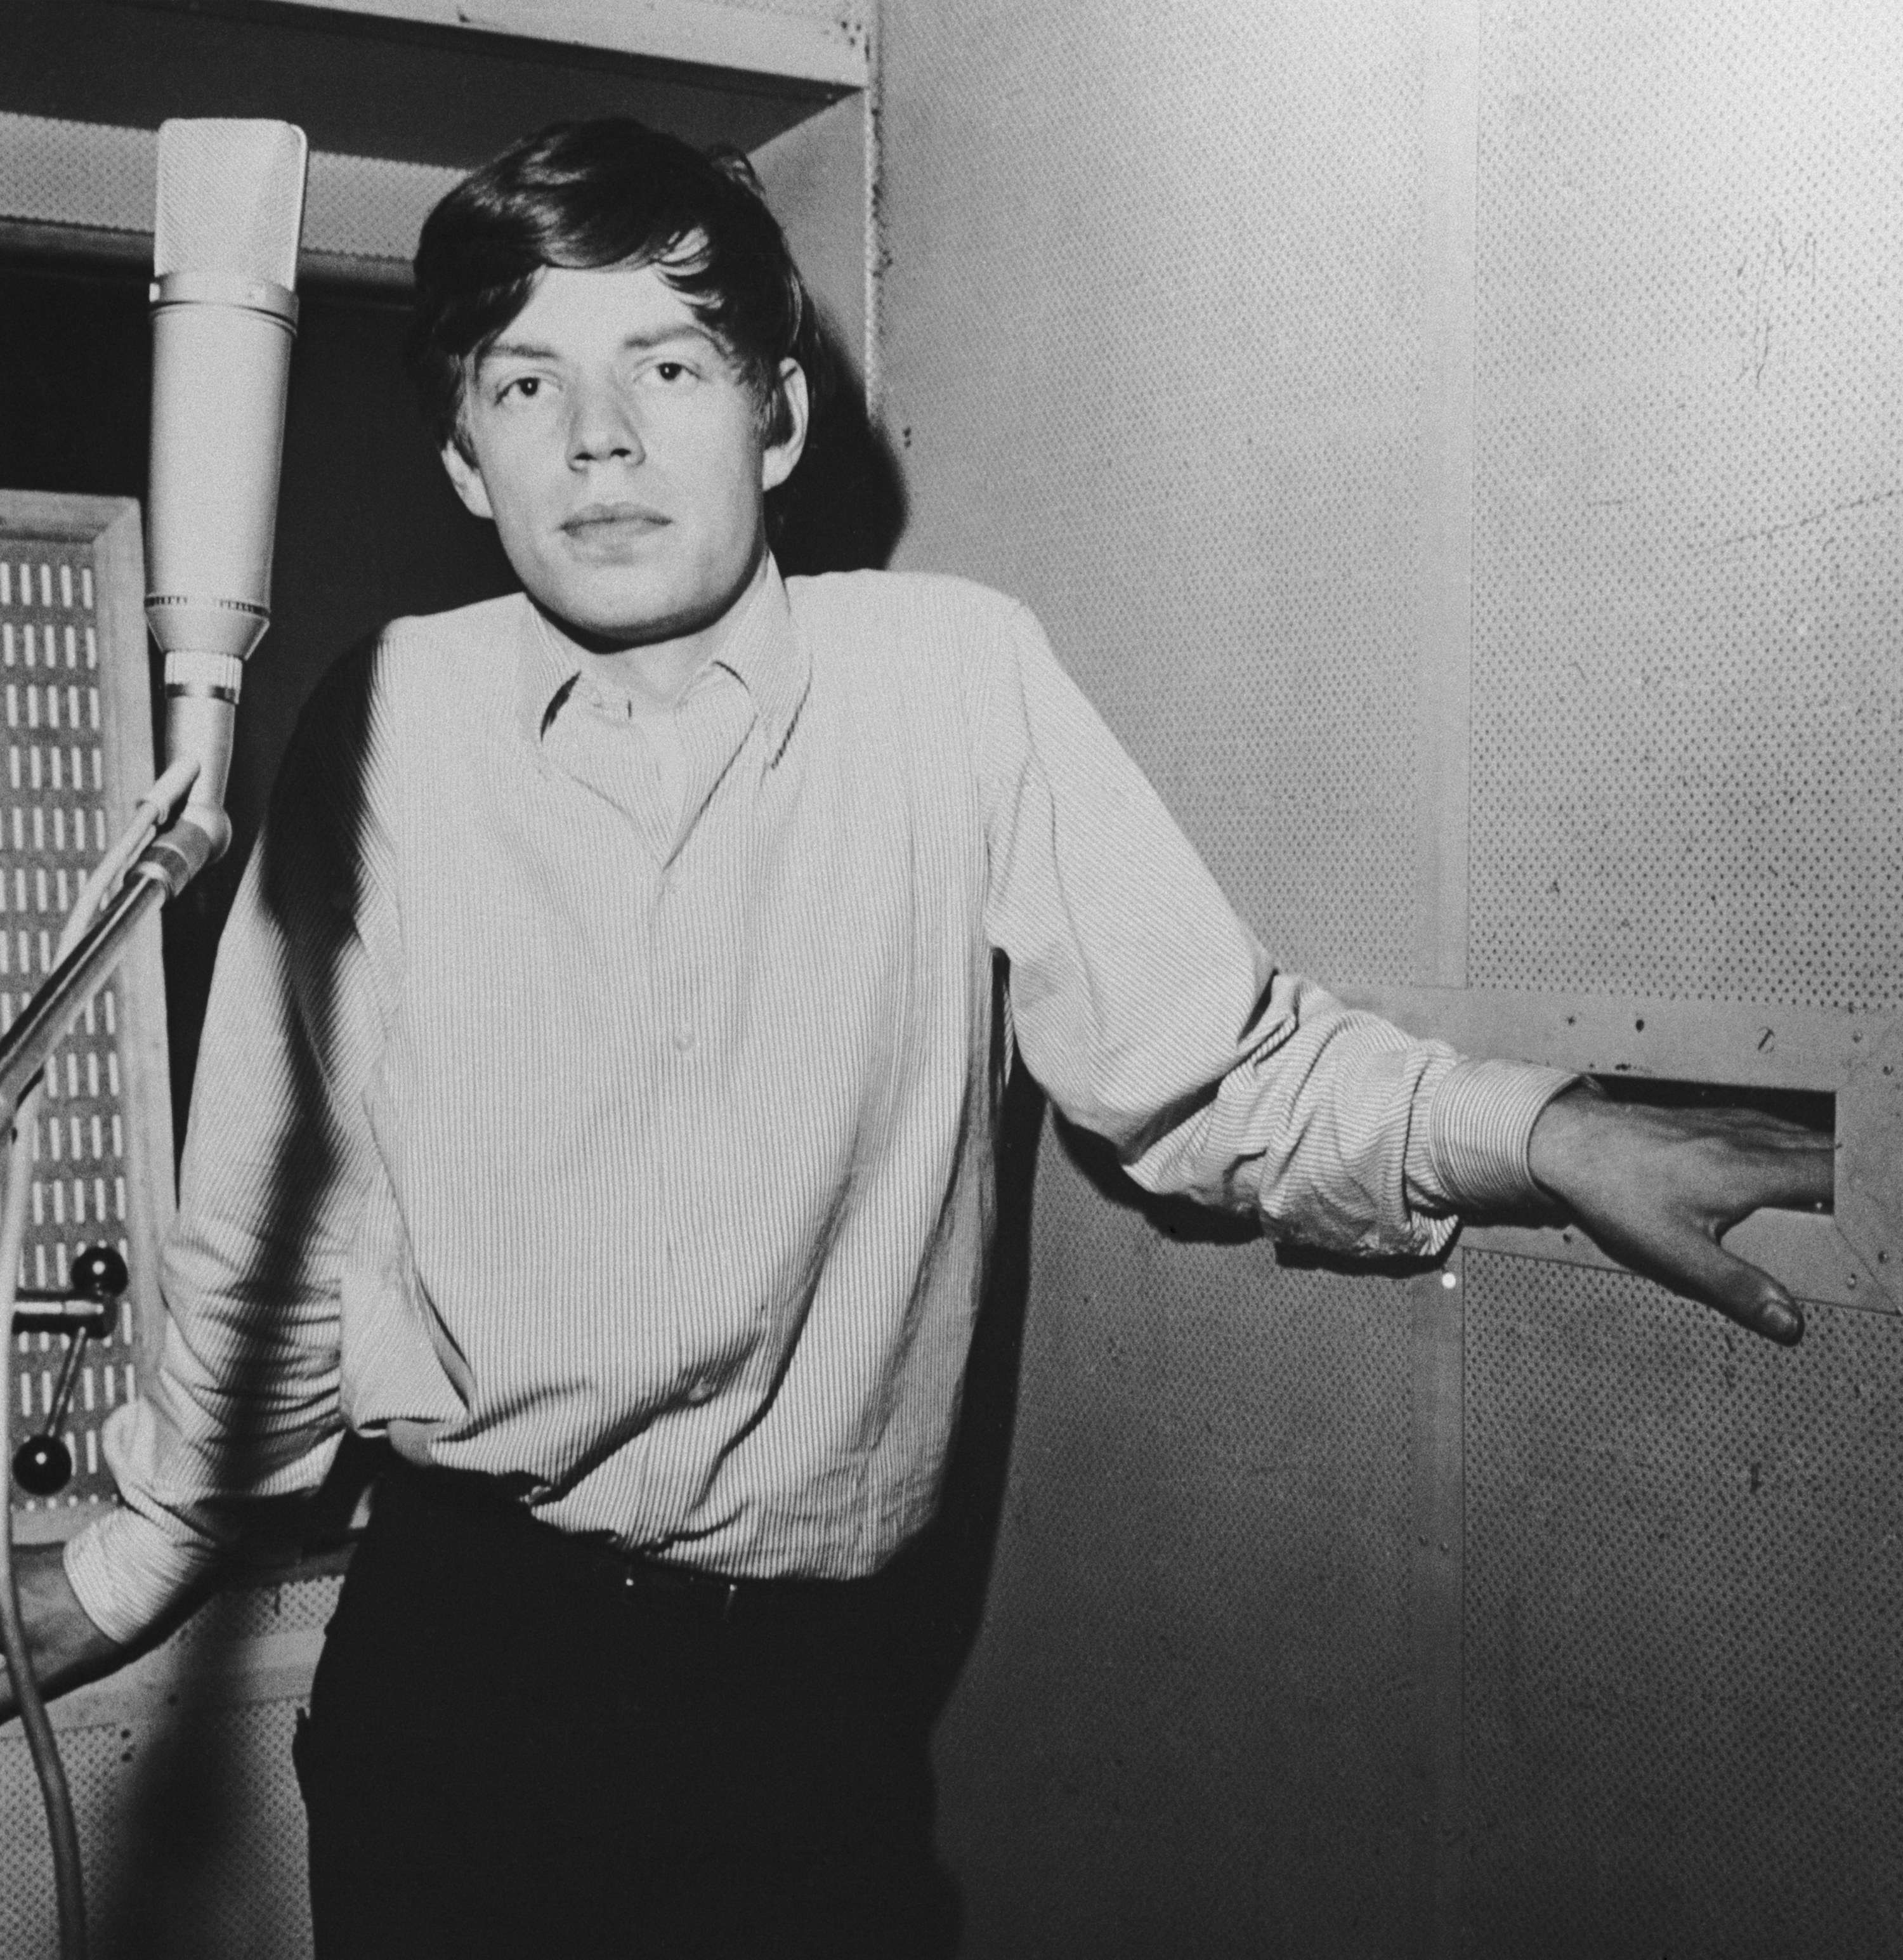 Mick in a recording booth